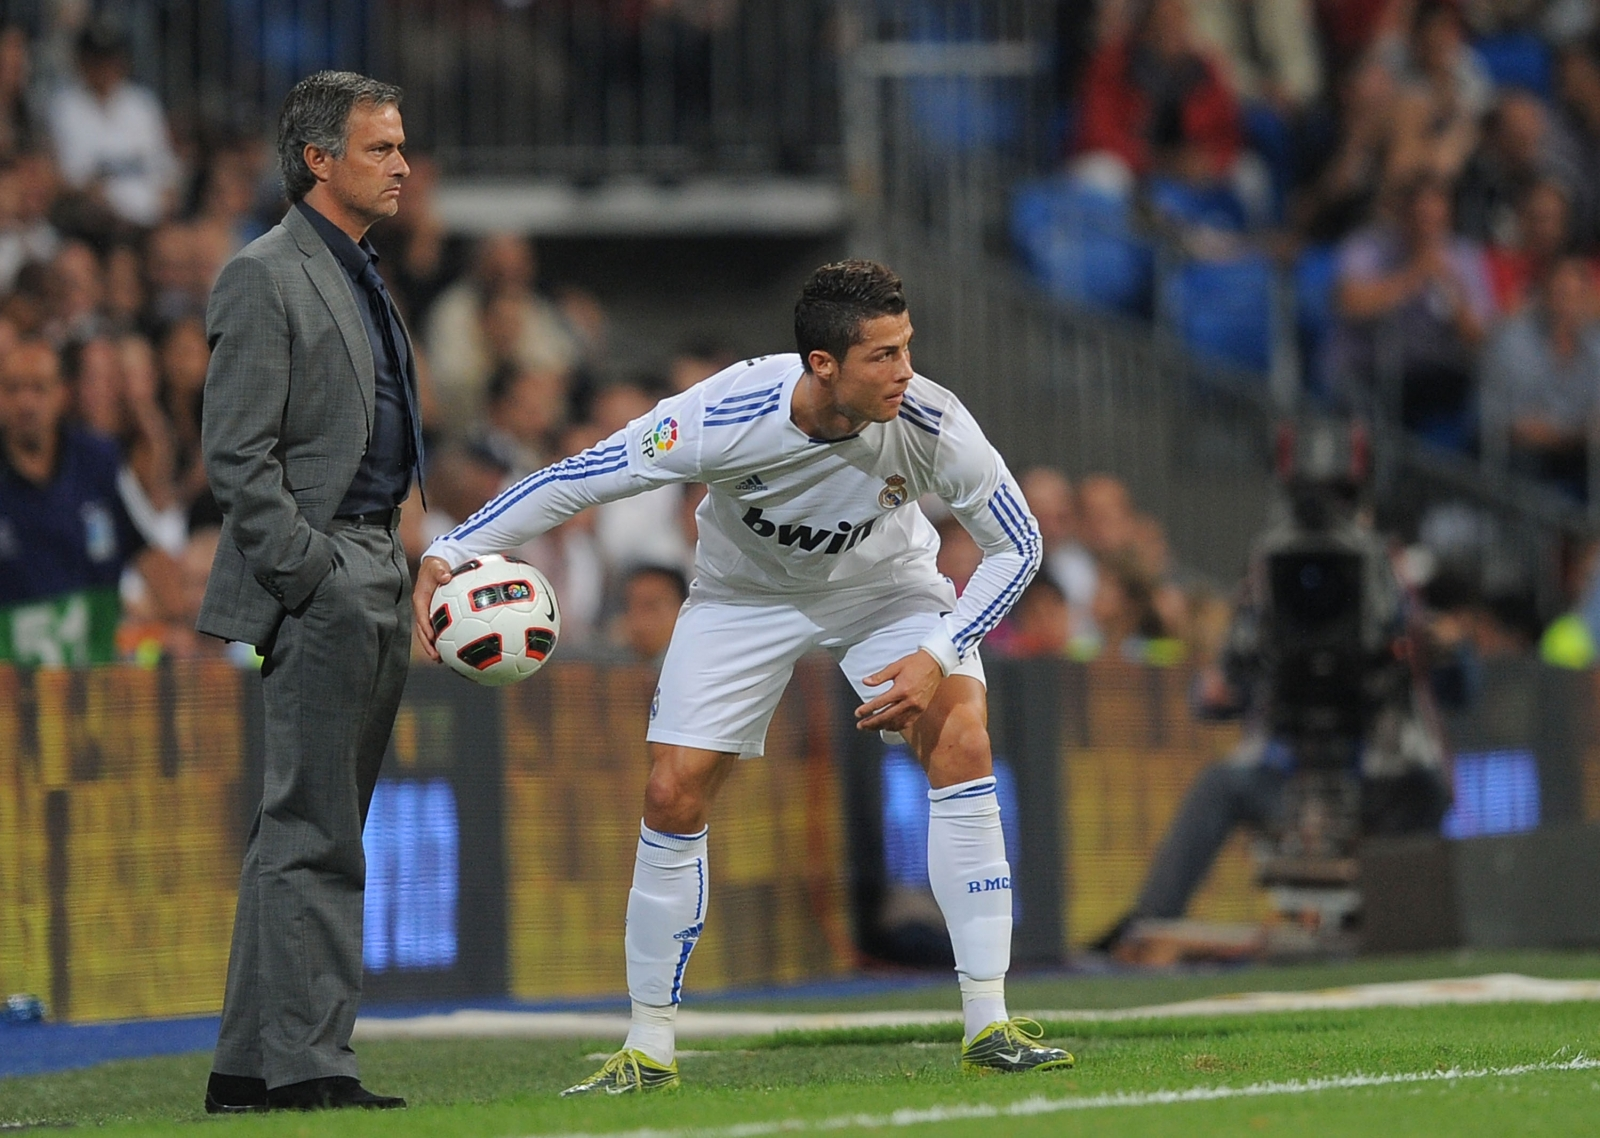 Jose Mourinho (left) and Cristiano Ronaldo